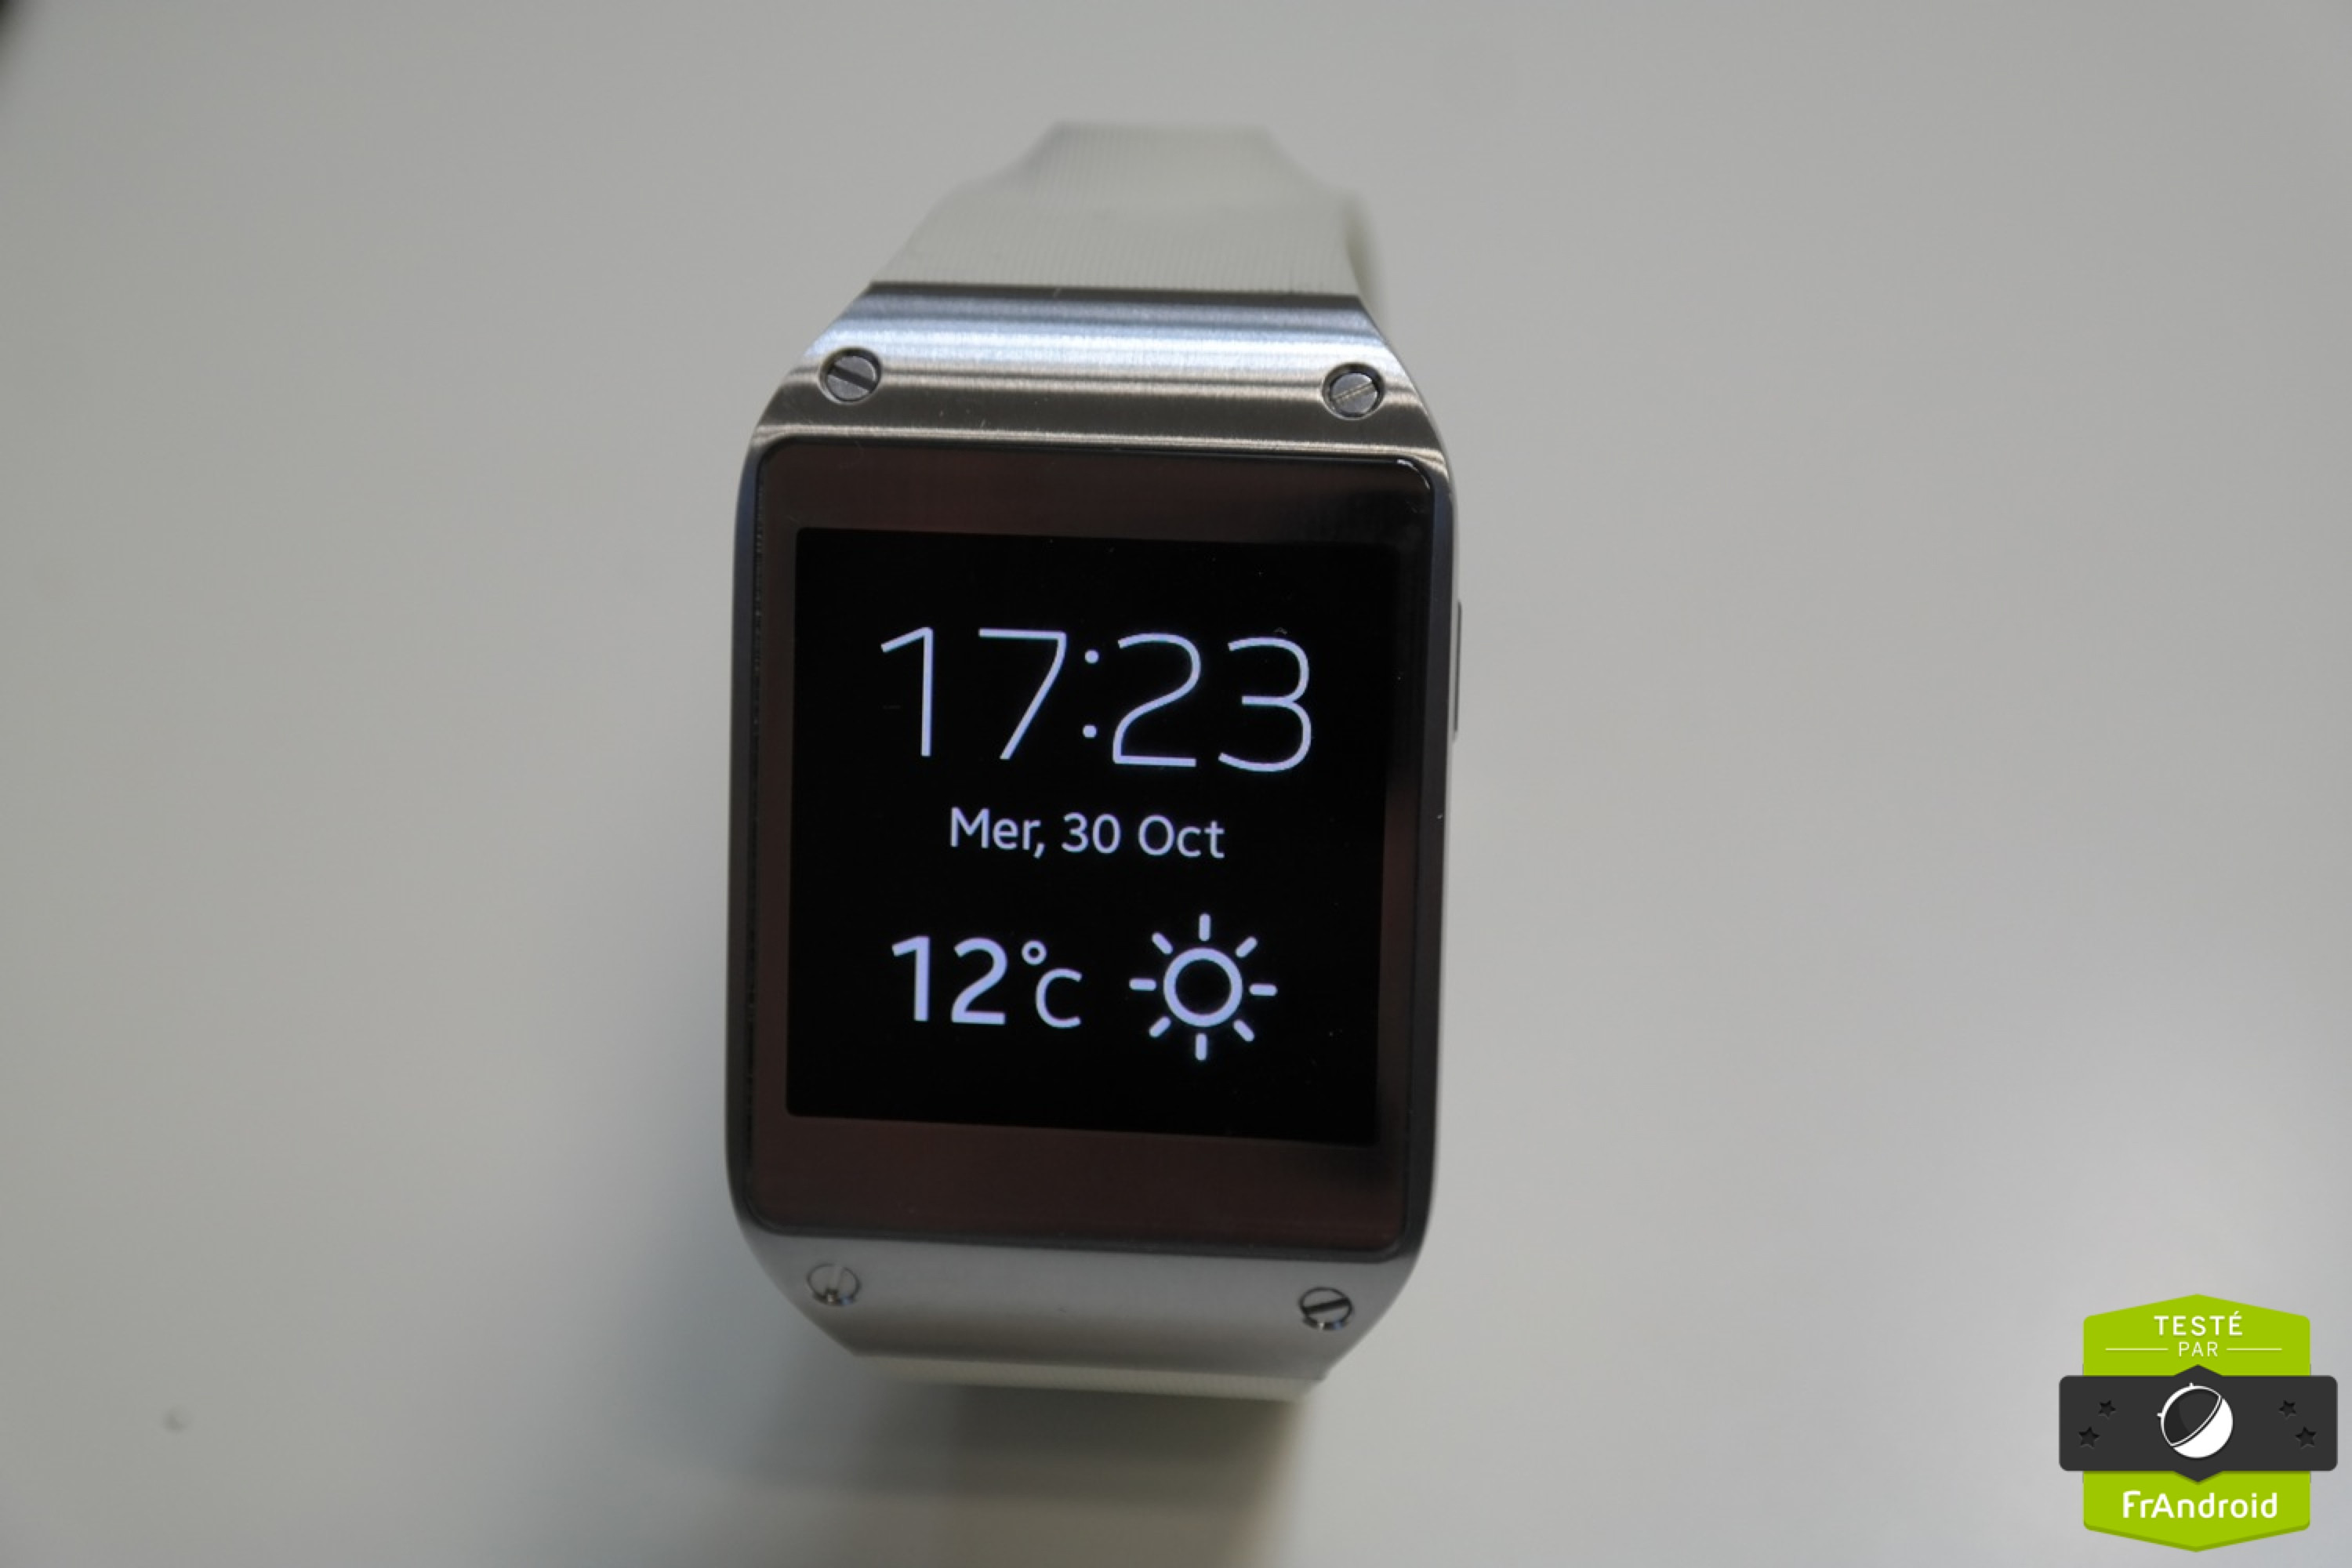 samsung galaxy gear des premiers jeux ama d barquent sur la montre connect e frandroid. Black Bedroom Furniture Sets. Home Design Ideas